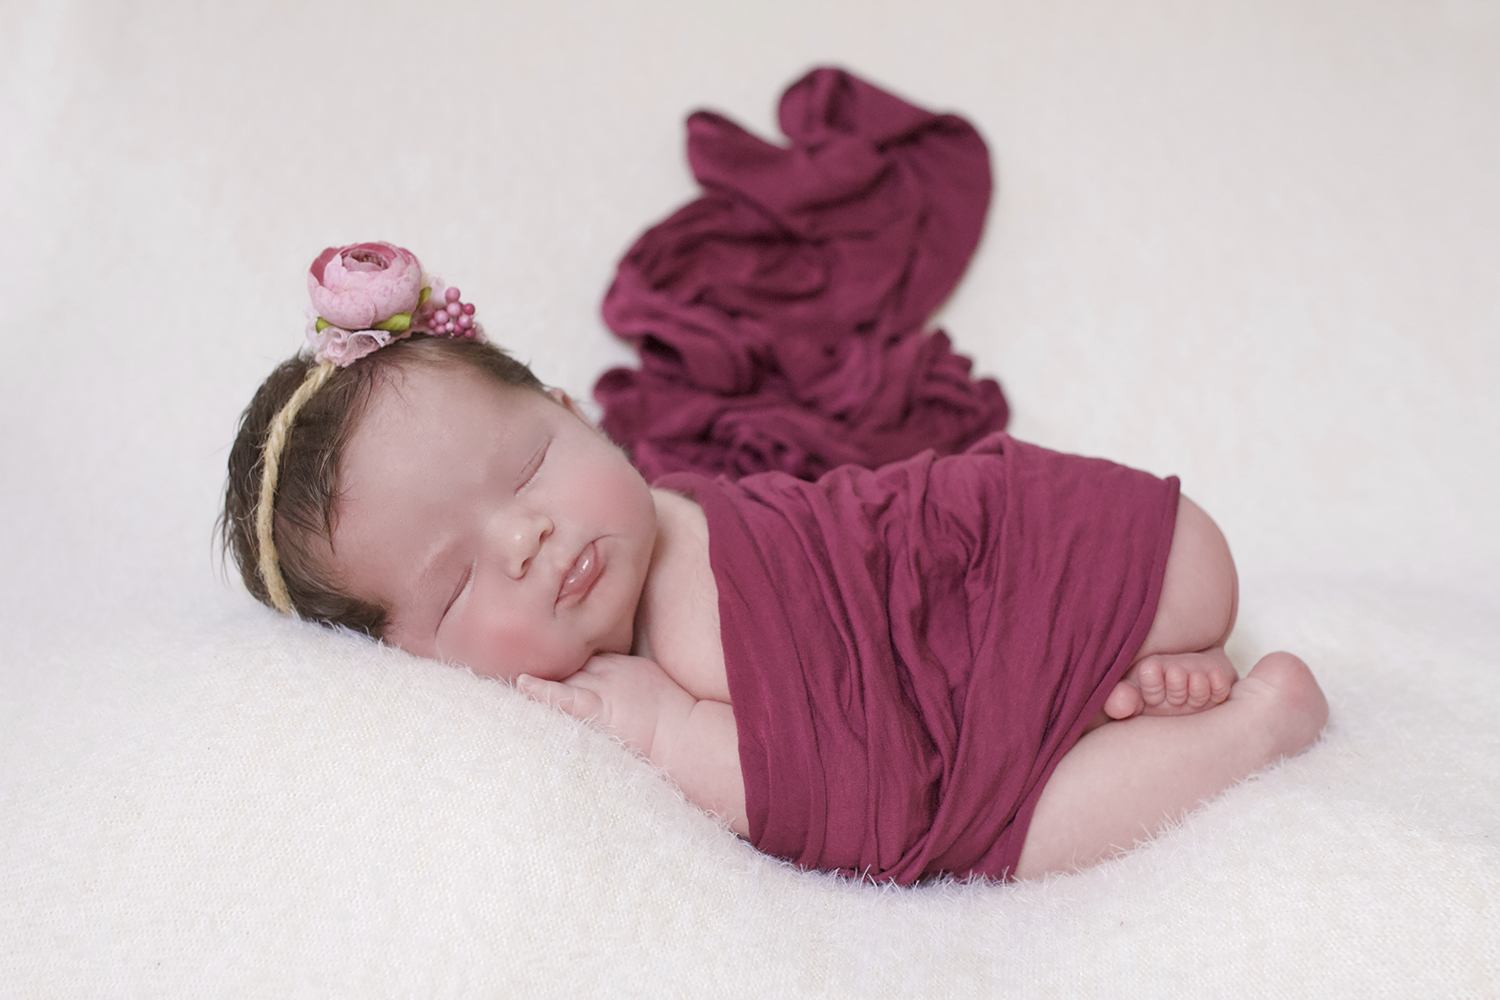 Newborn baby girl sleeping on cream blanket with plum wrap and pink flower tieback